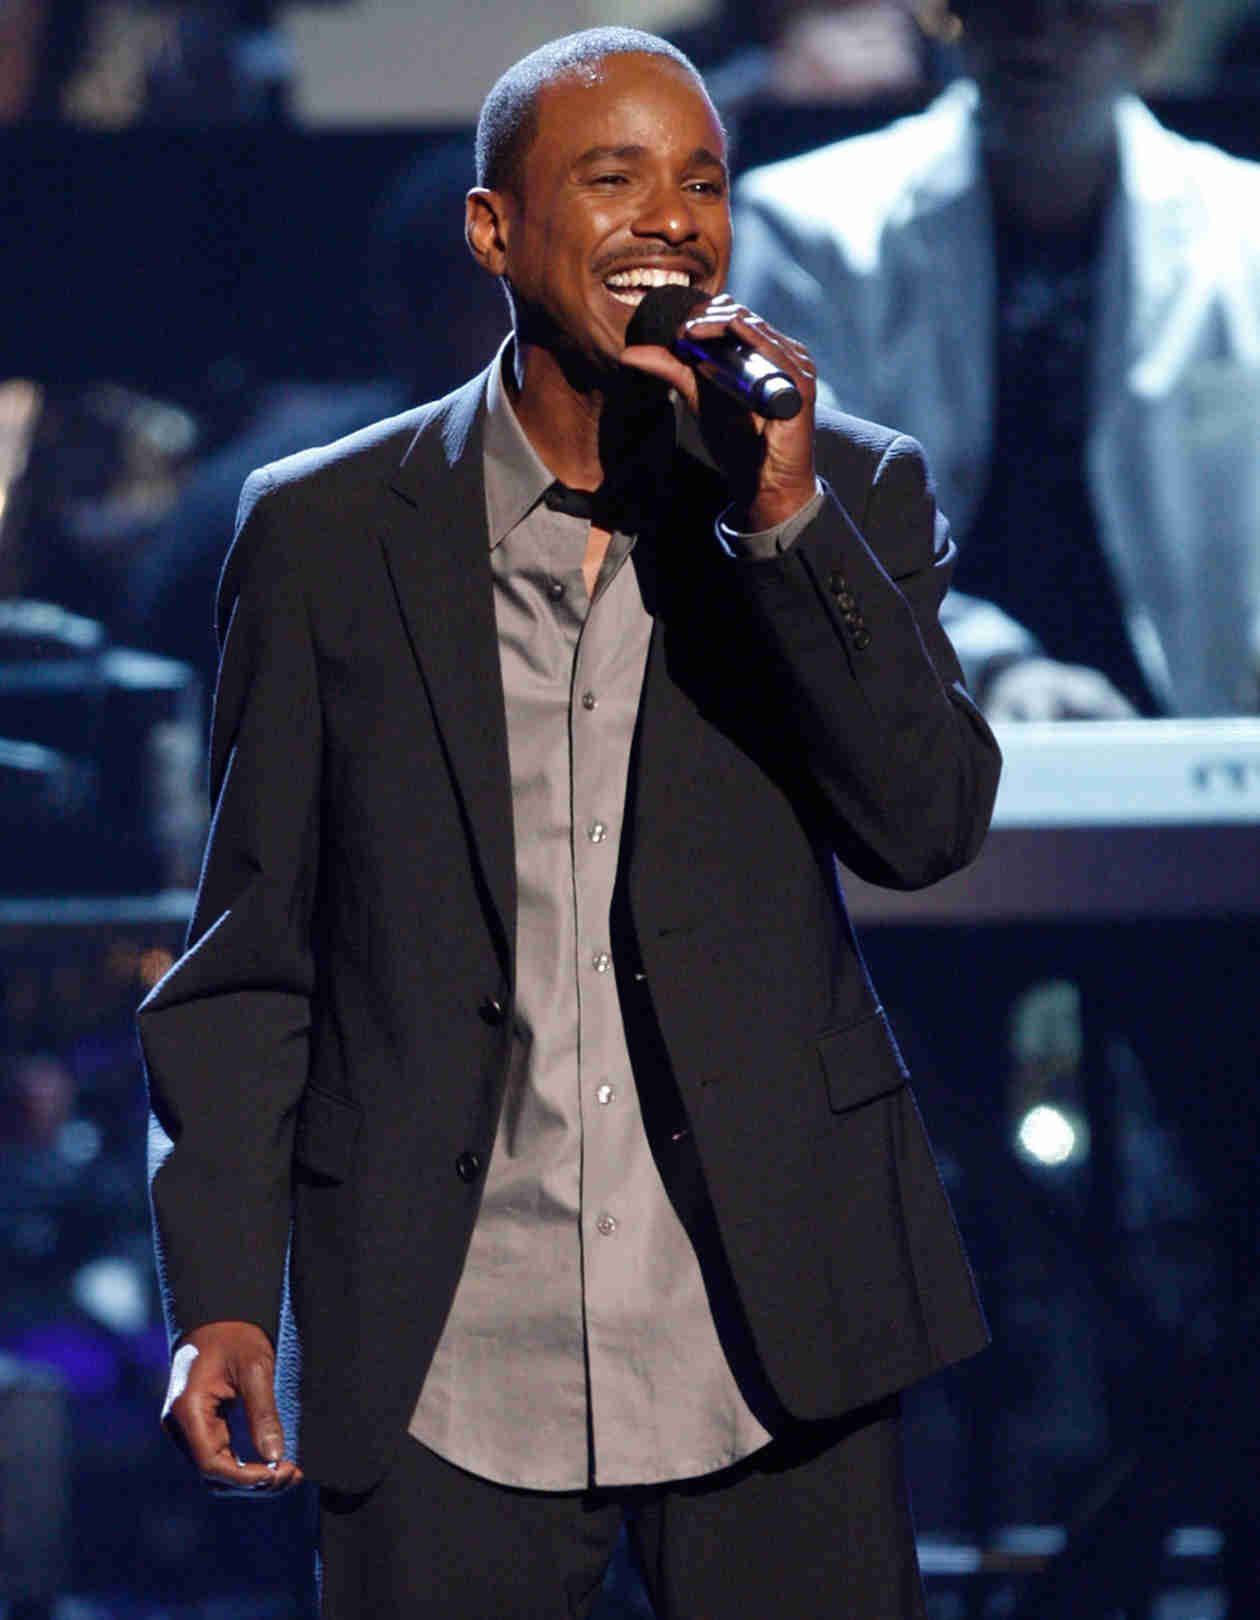 Tevin Campbell Performs in New York City and Amazes Fans! (VIDEOS)